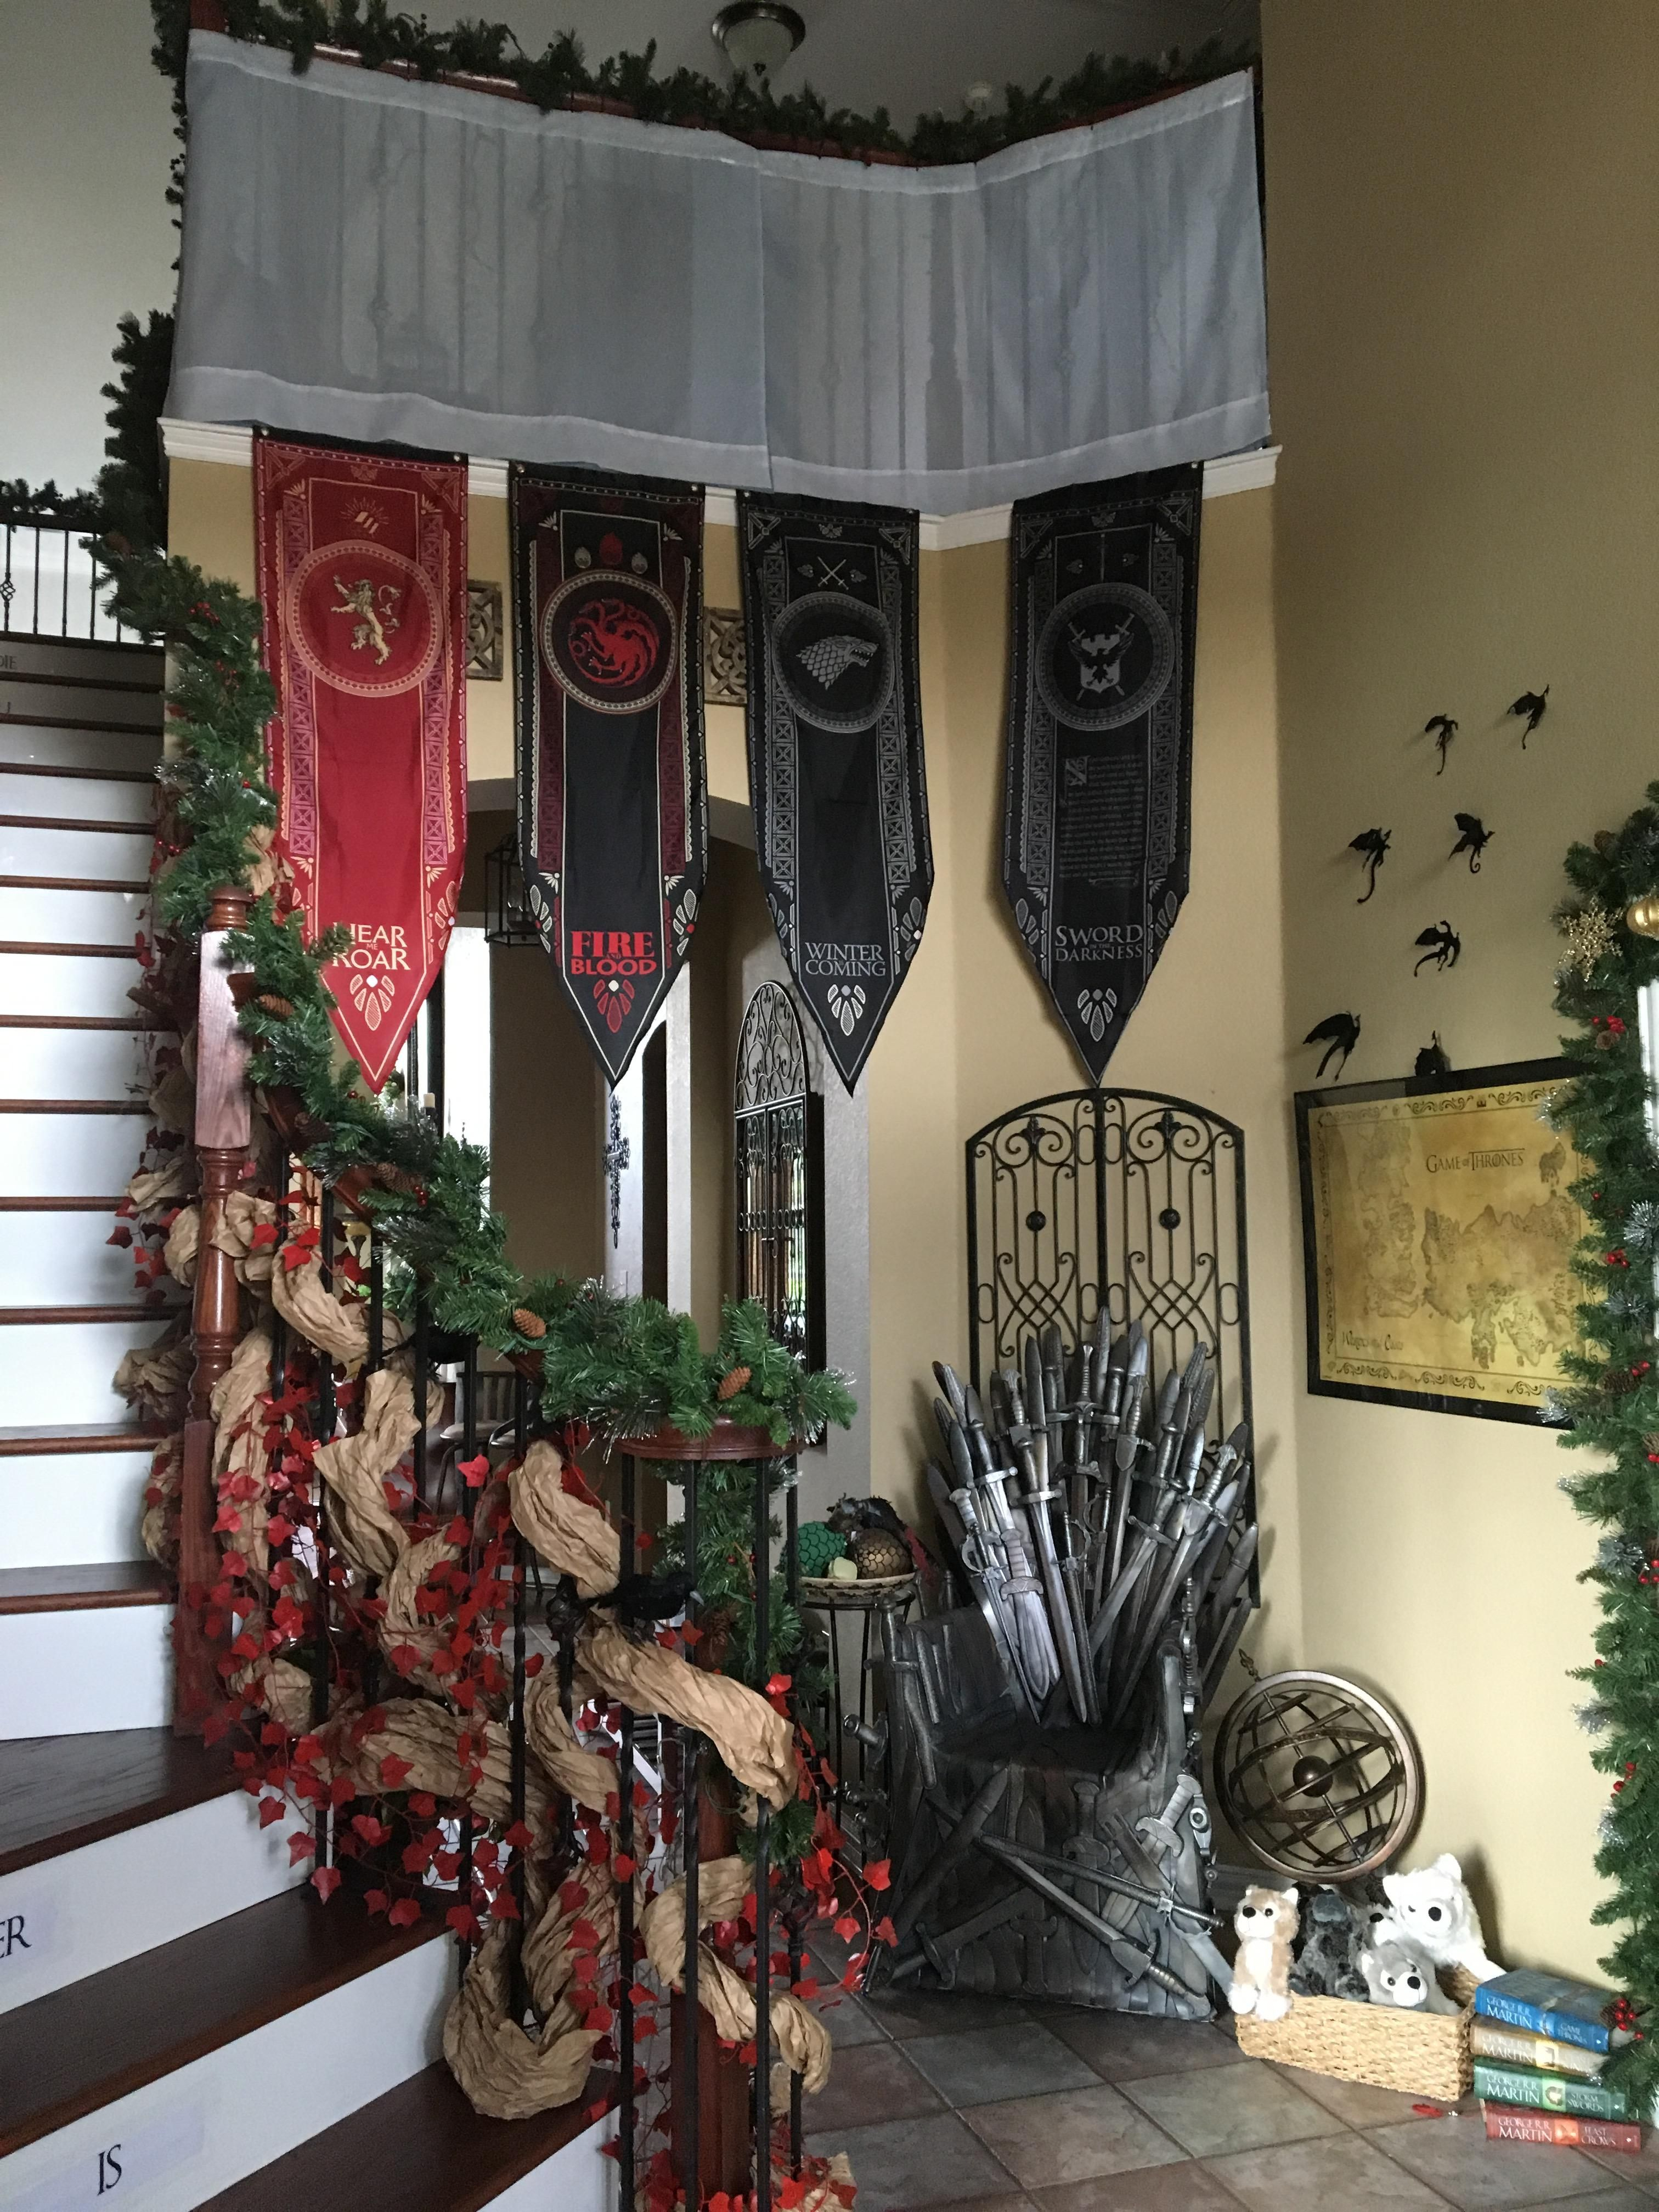 Every Year For The Holidays The House Gets A New Theme Until Spring. This Year, It's Game Of